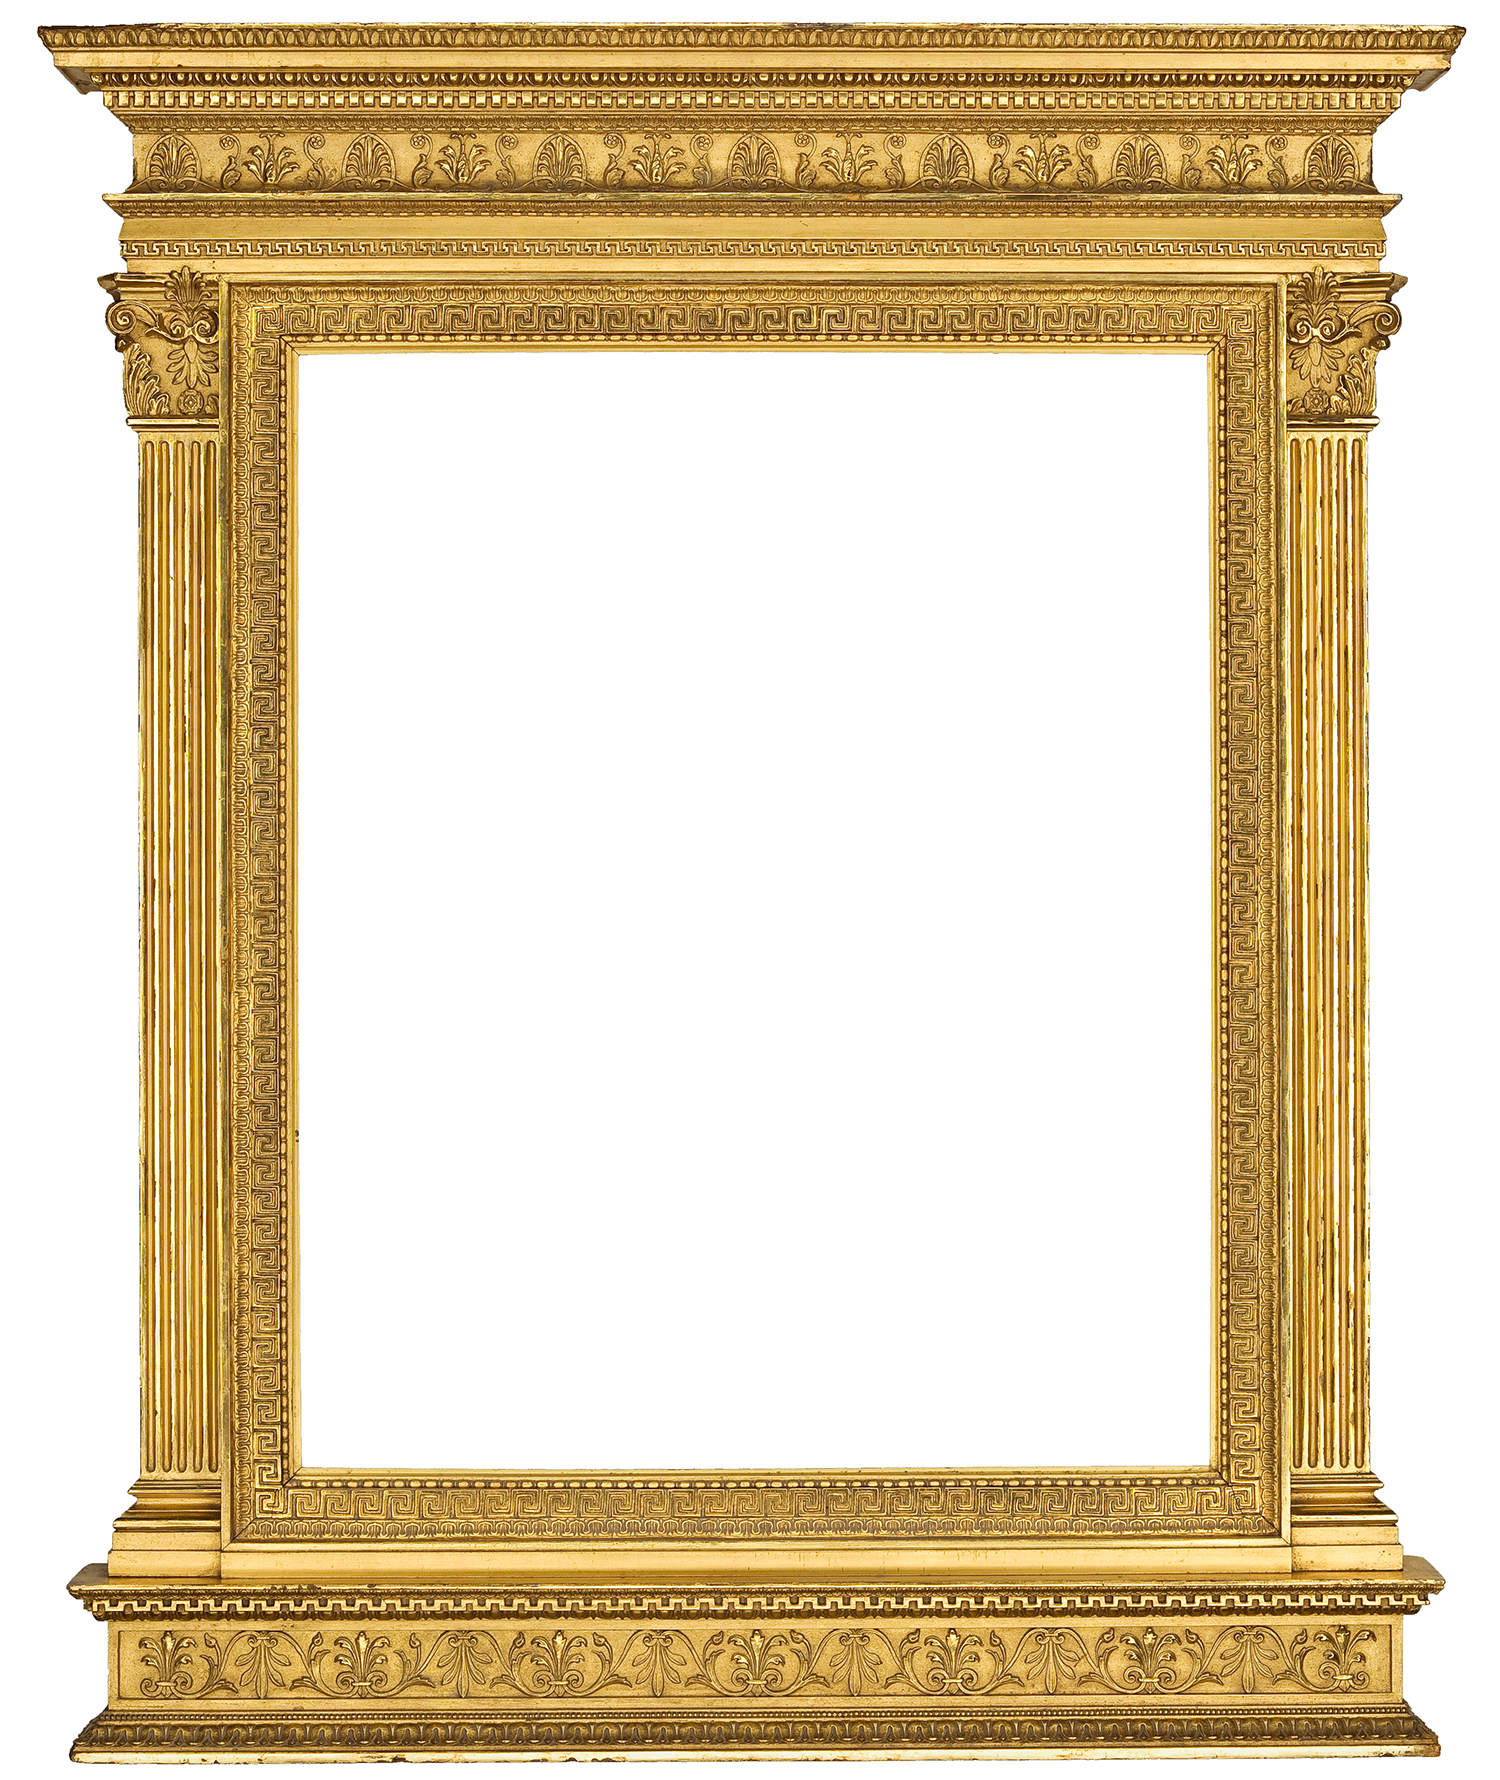 Wooden Frame Design : Gilt composition tabernacle frame designed by Stanford White, circa ...